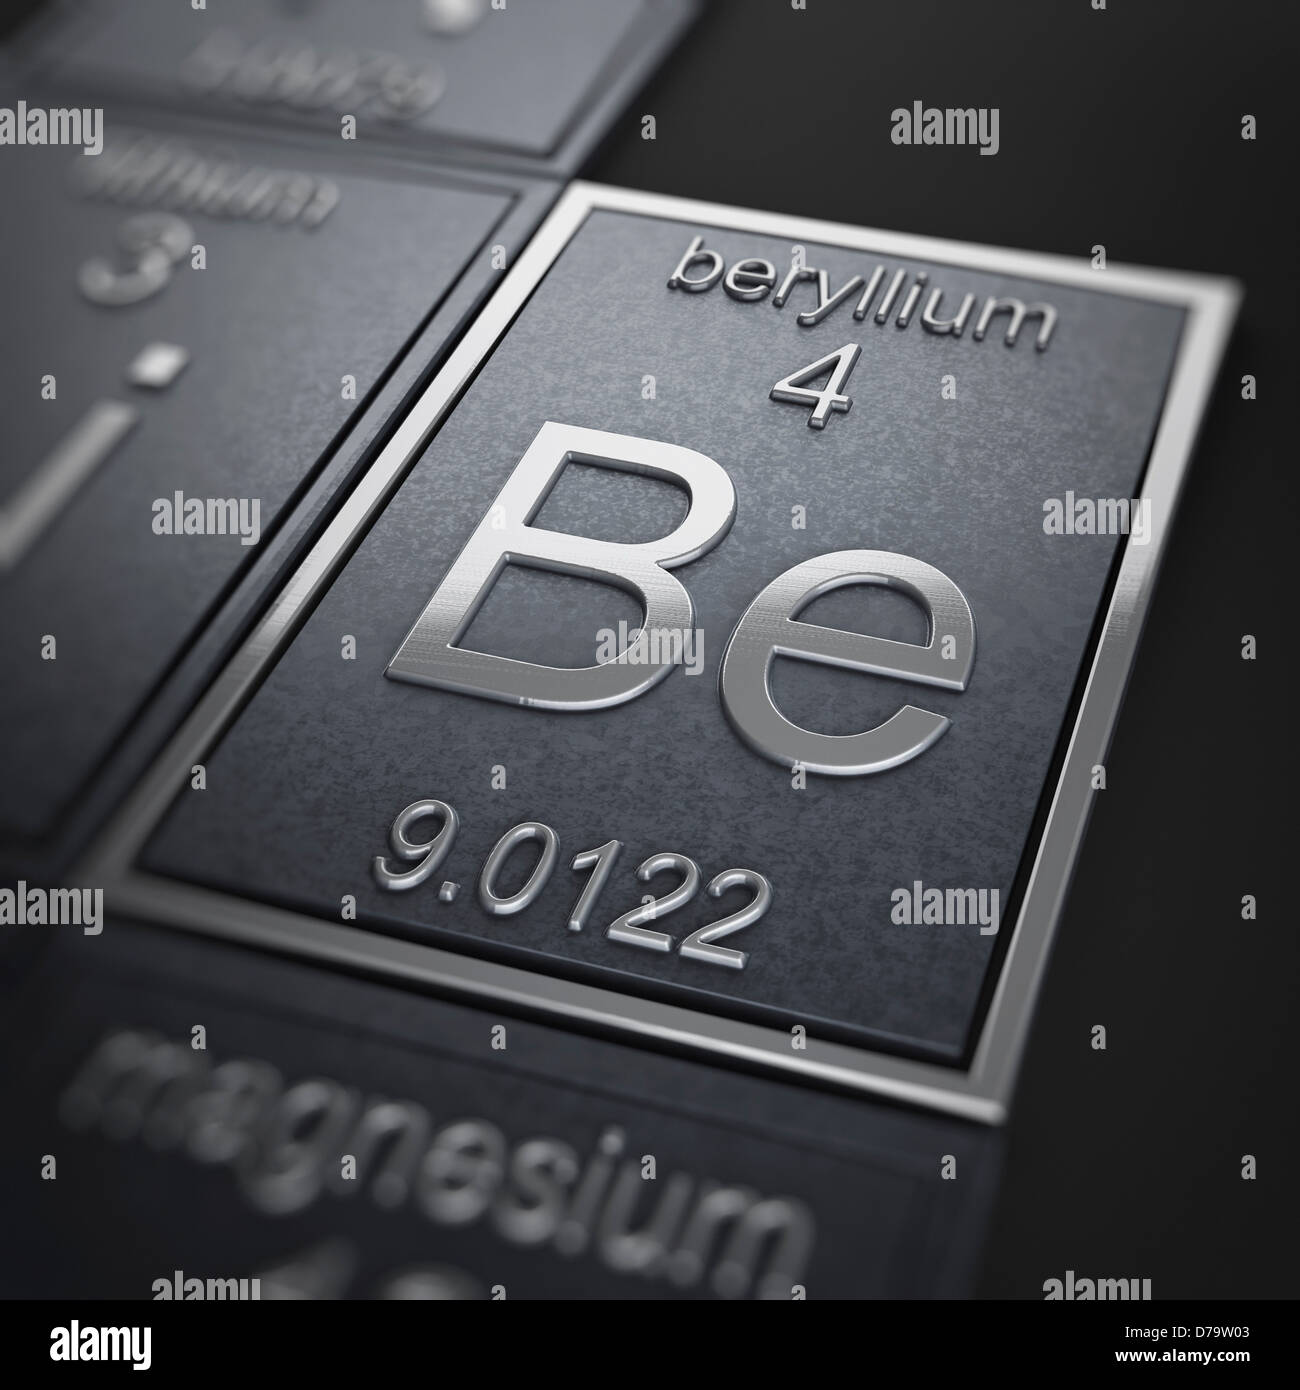 Beryllium chemical element stock photo 56150867 alamy beryllium chemical element buycottarizona Image collections